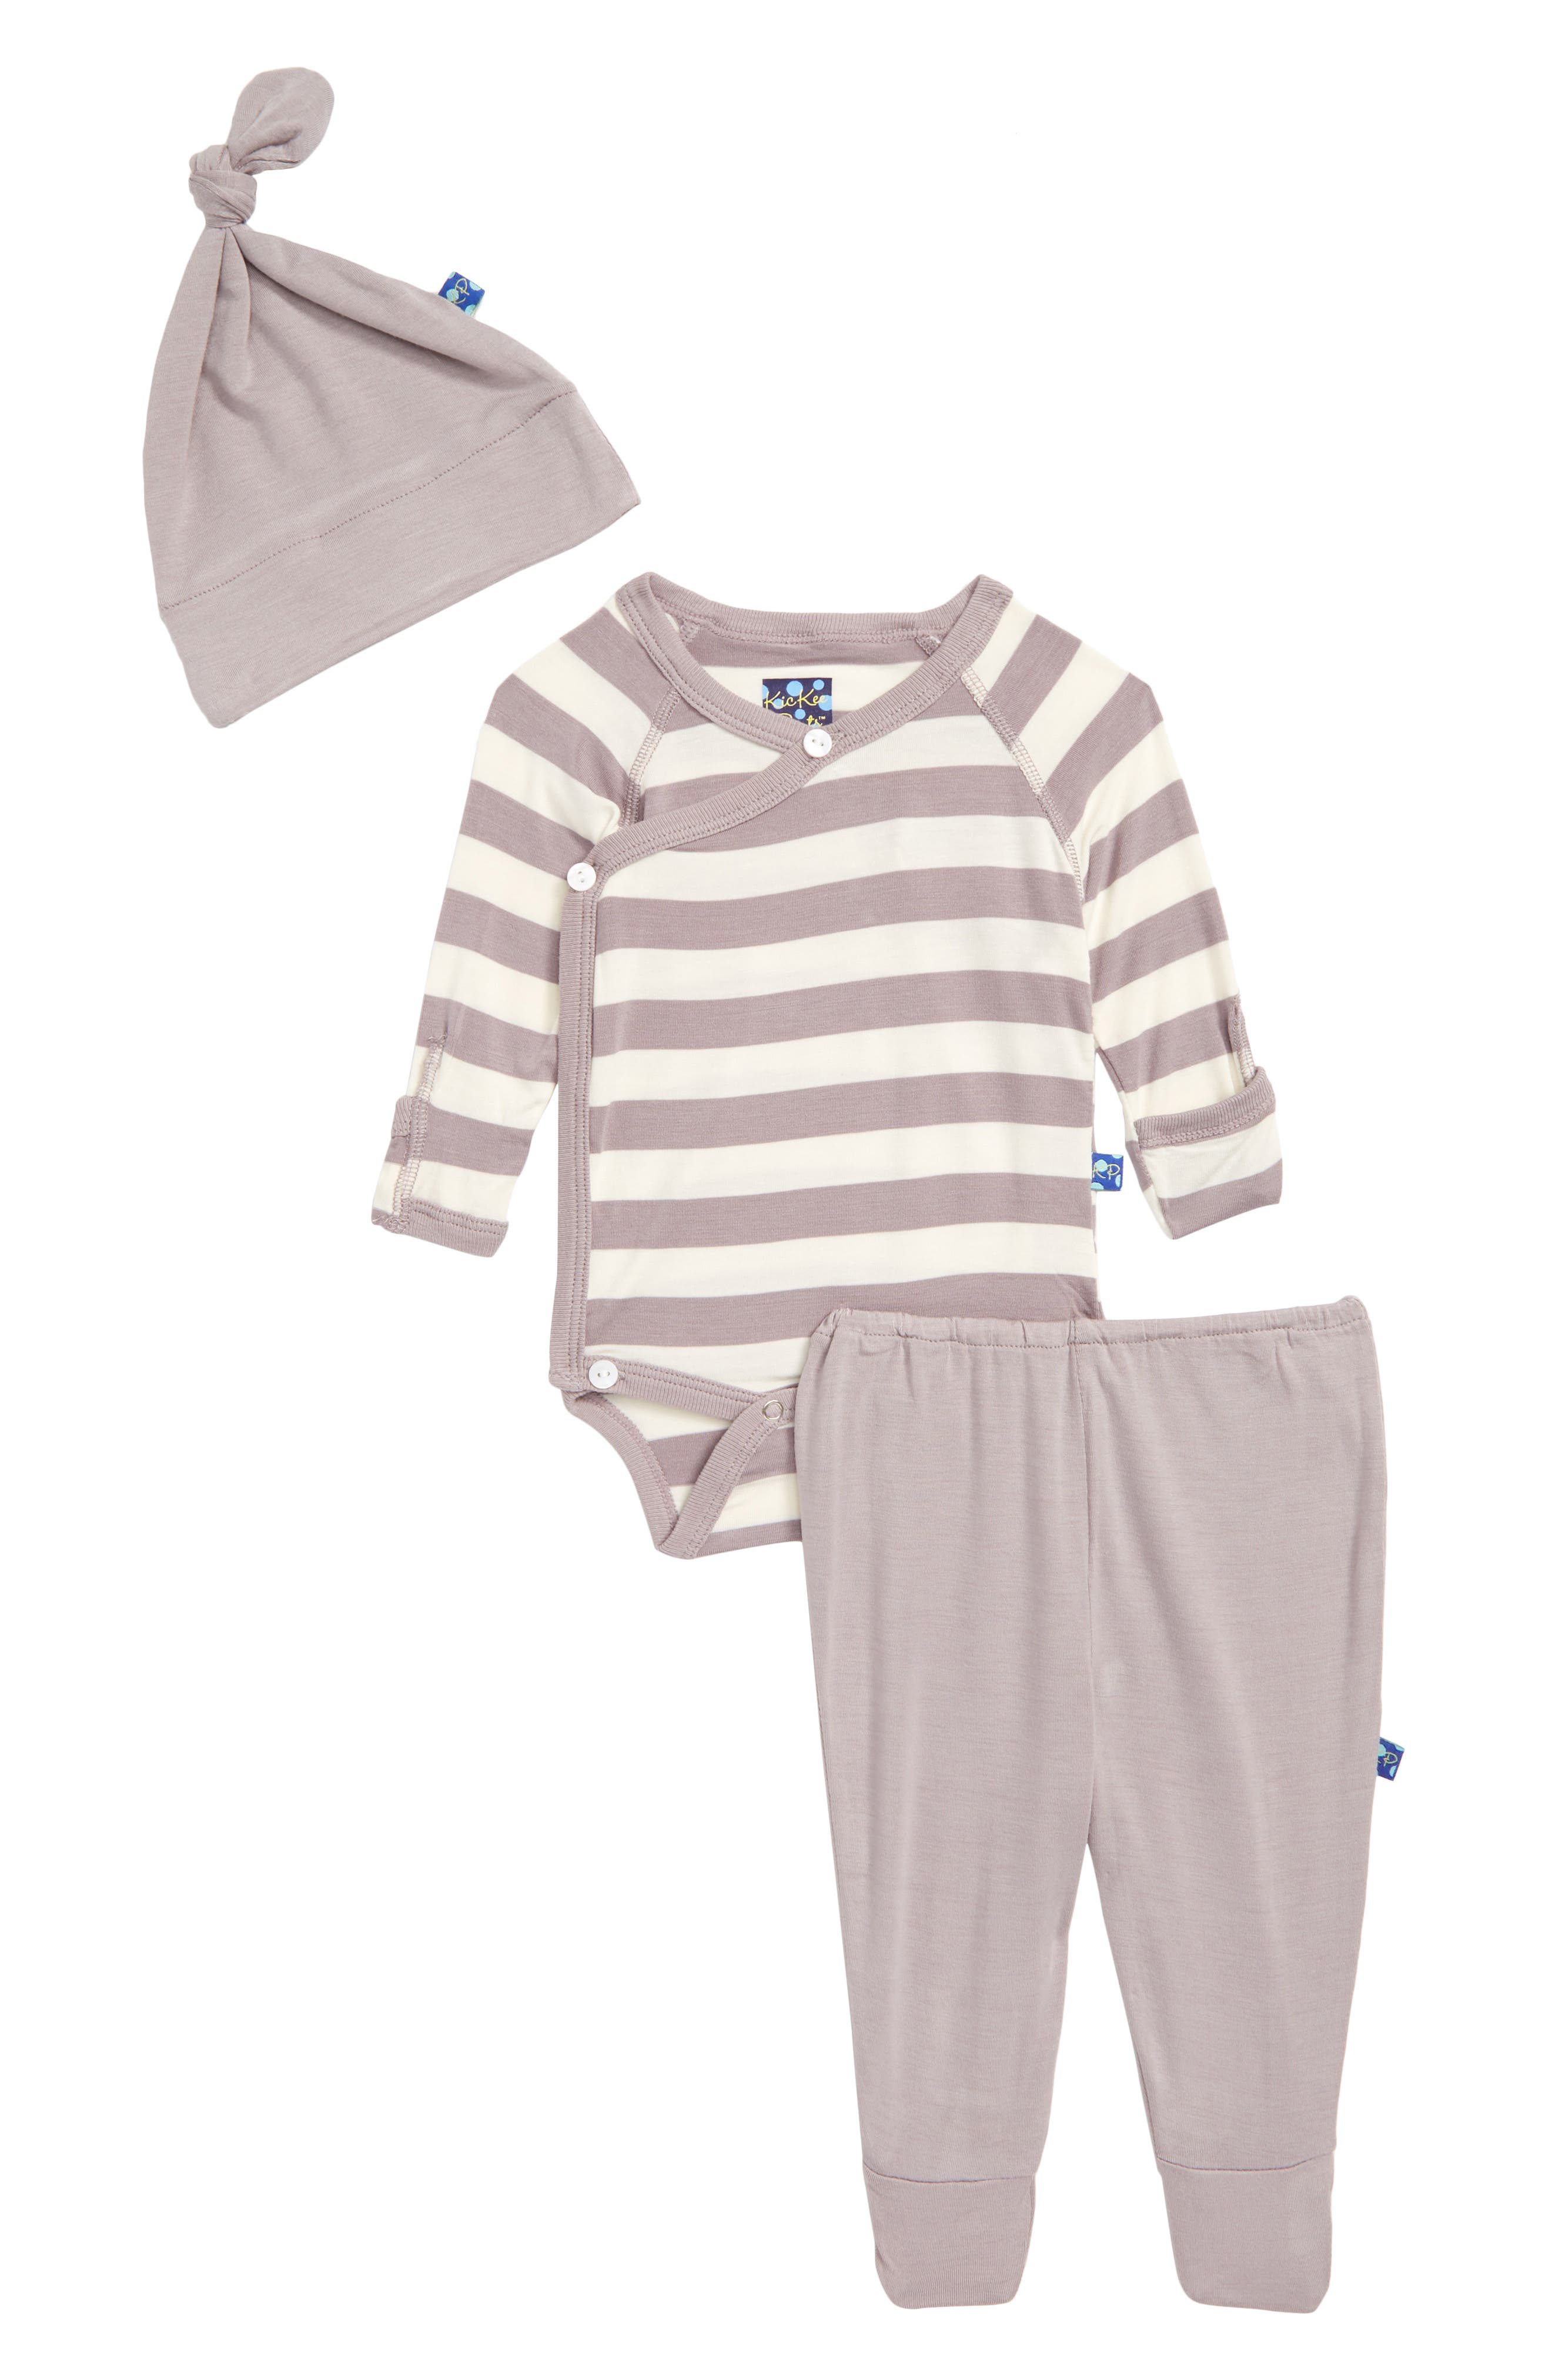 Feather Contrast Stripe Three-Piece Hat, Bodysuit & Pants Set,                         Main,                         color, 060